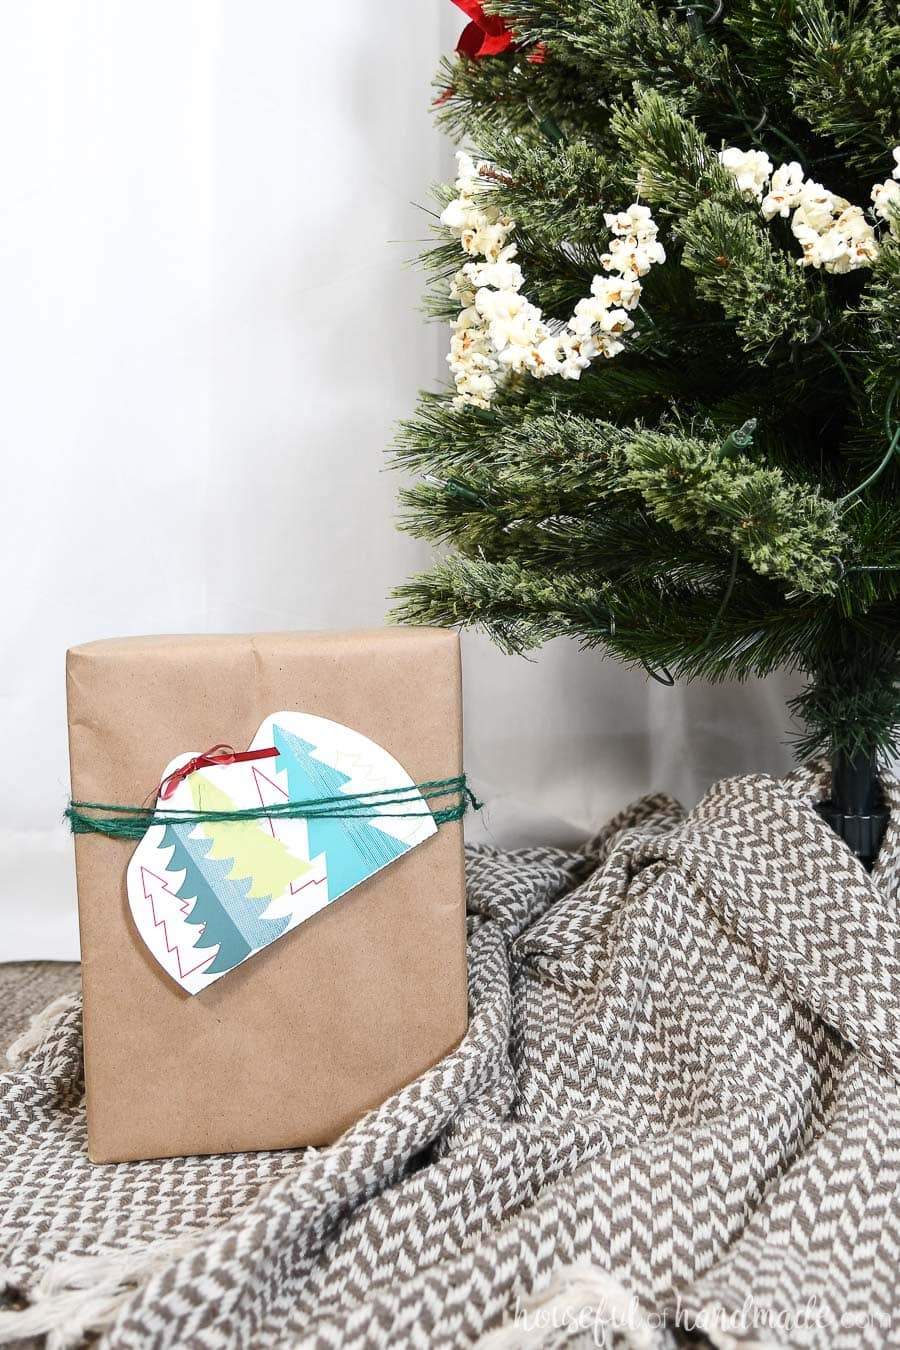 Christmas present wrapped under the tree with a gift card attached in a printable gift card holder.